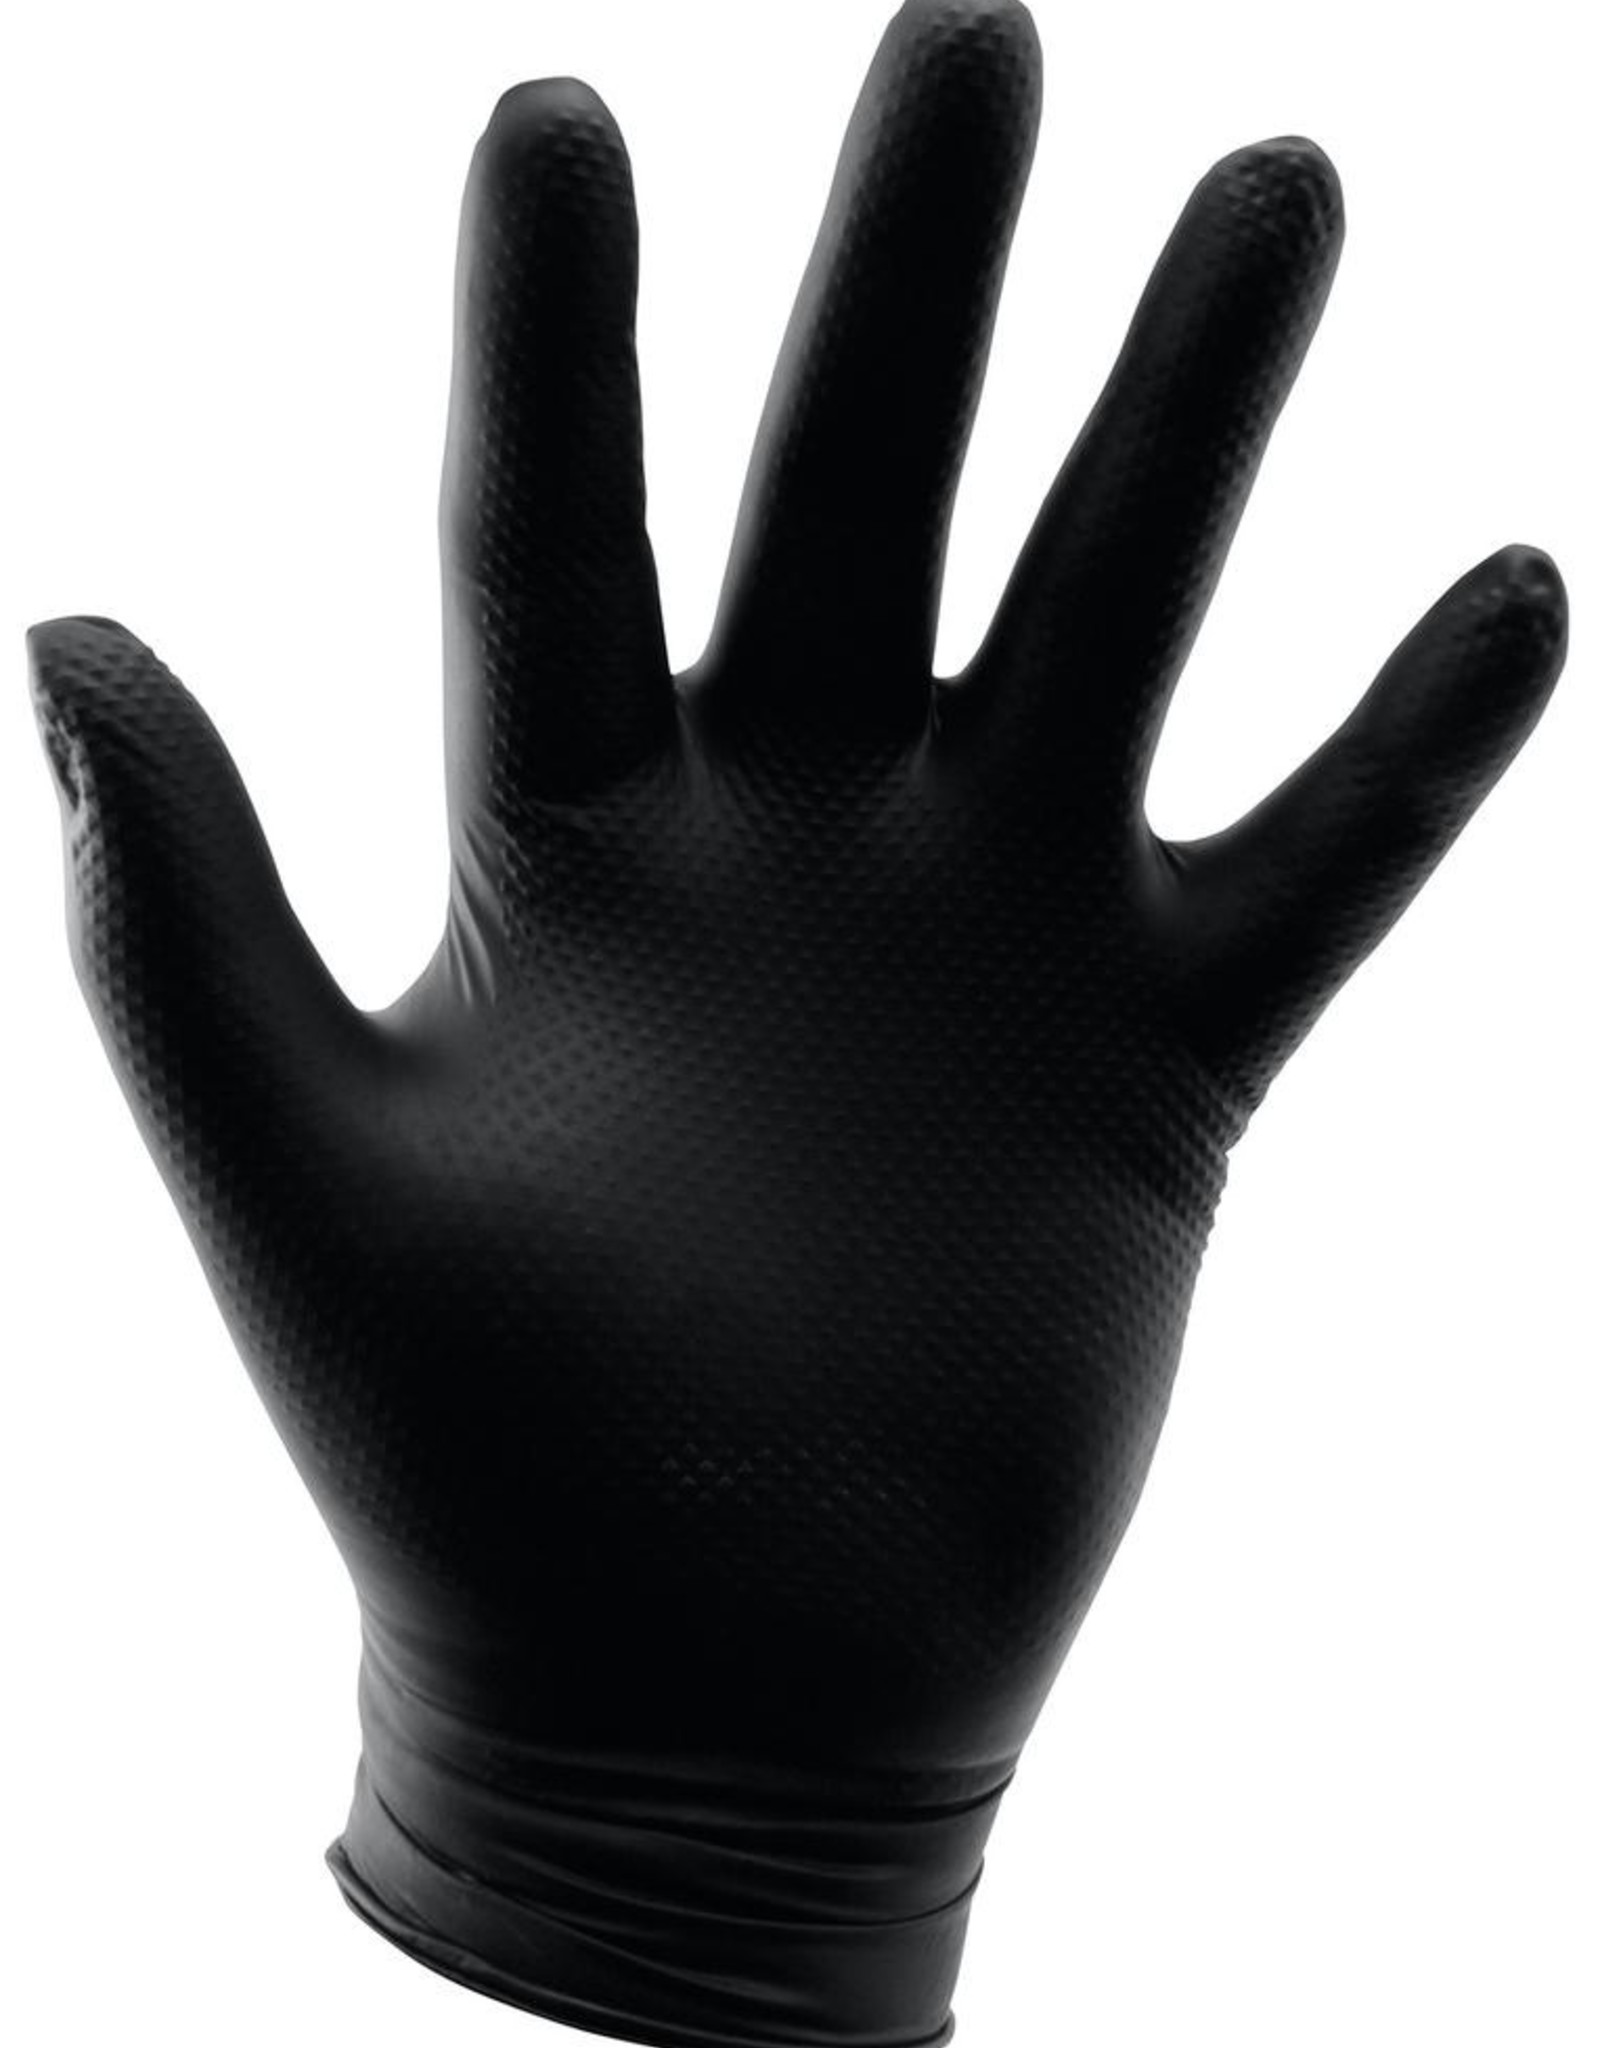 GROWERS EDGE Grower's Edge® Disposable Diamond Textured Nitrile Gloves are latex and powder free. Heavy-duty 6 mil thickness for strength and durability while still maintaining its elasticity. Grower's Edge® Disposable Diamond Textured Nitrile Gloves are ambidextrous